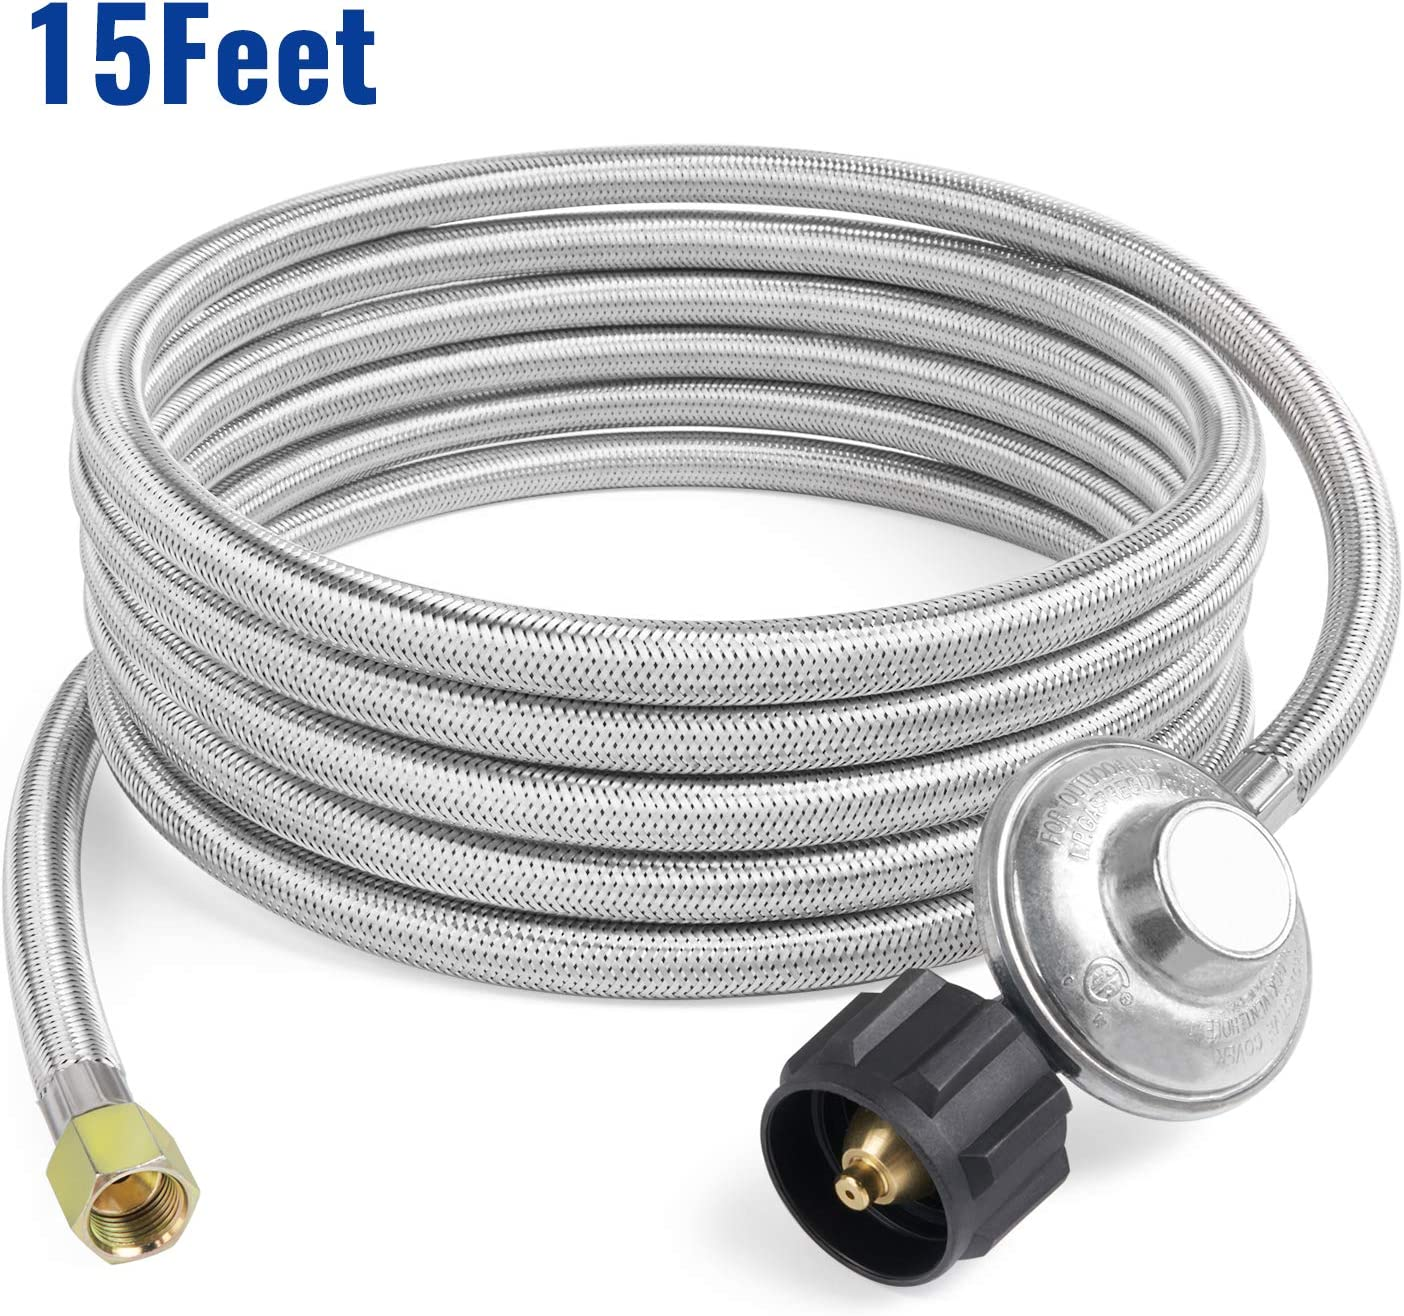 GASPRO 15ft Stainless Braided Propane Regulator with Hose, Low Pressure LP Hose and Regulator for Propane Fire Pit, Heater, Gas Grill,CSA